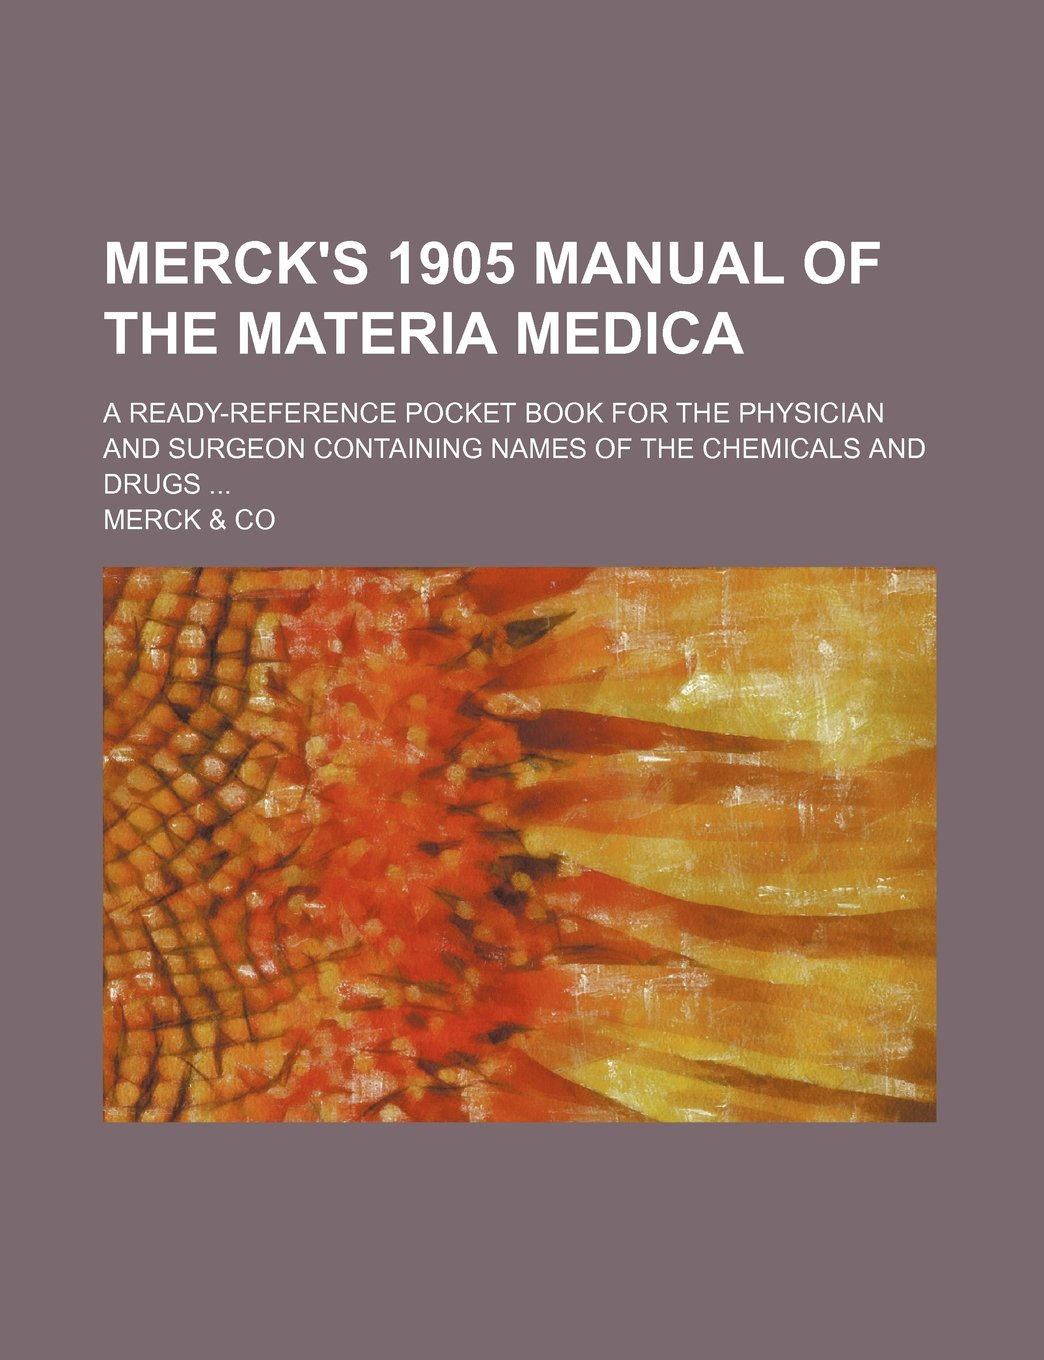 Mercks 1905 manual of the materia medica; a ready-reference pocket book for the physician and surgeon containing names of the chemicals and drugs: ...